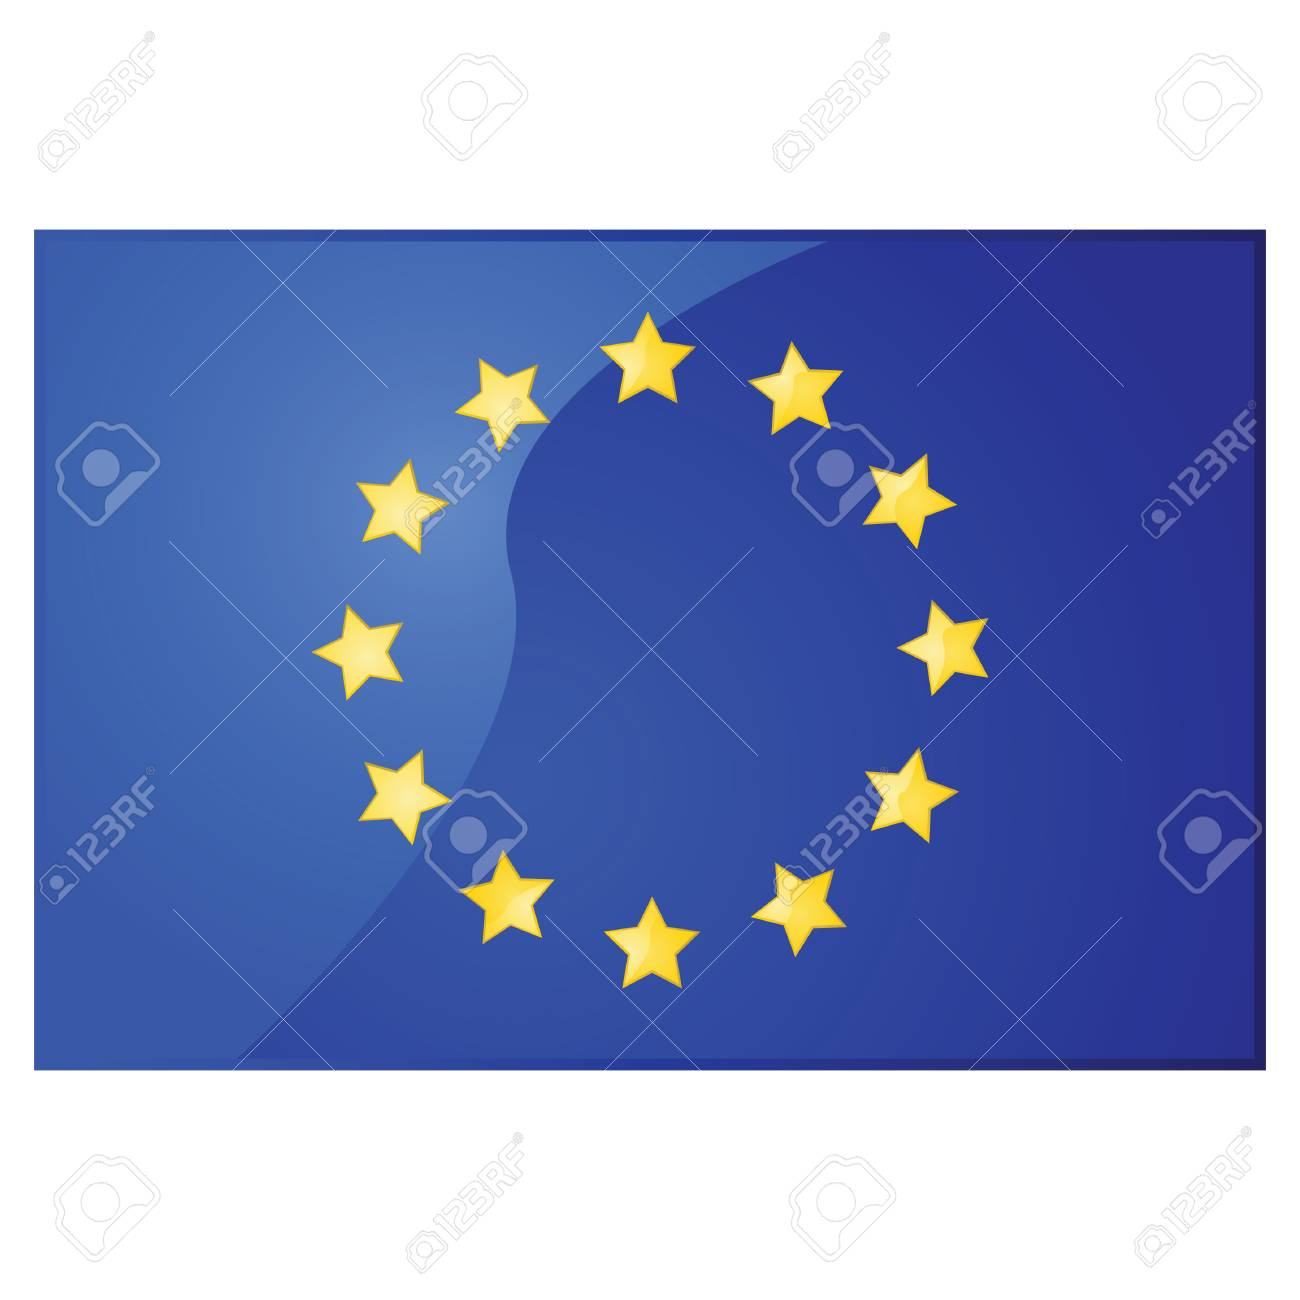 Glossy illustration of the flag of the European Union Stock Vector - 7697374